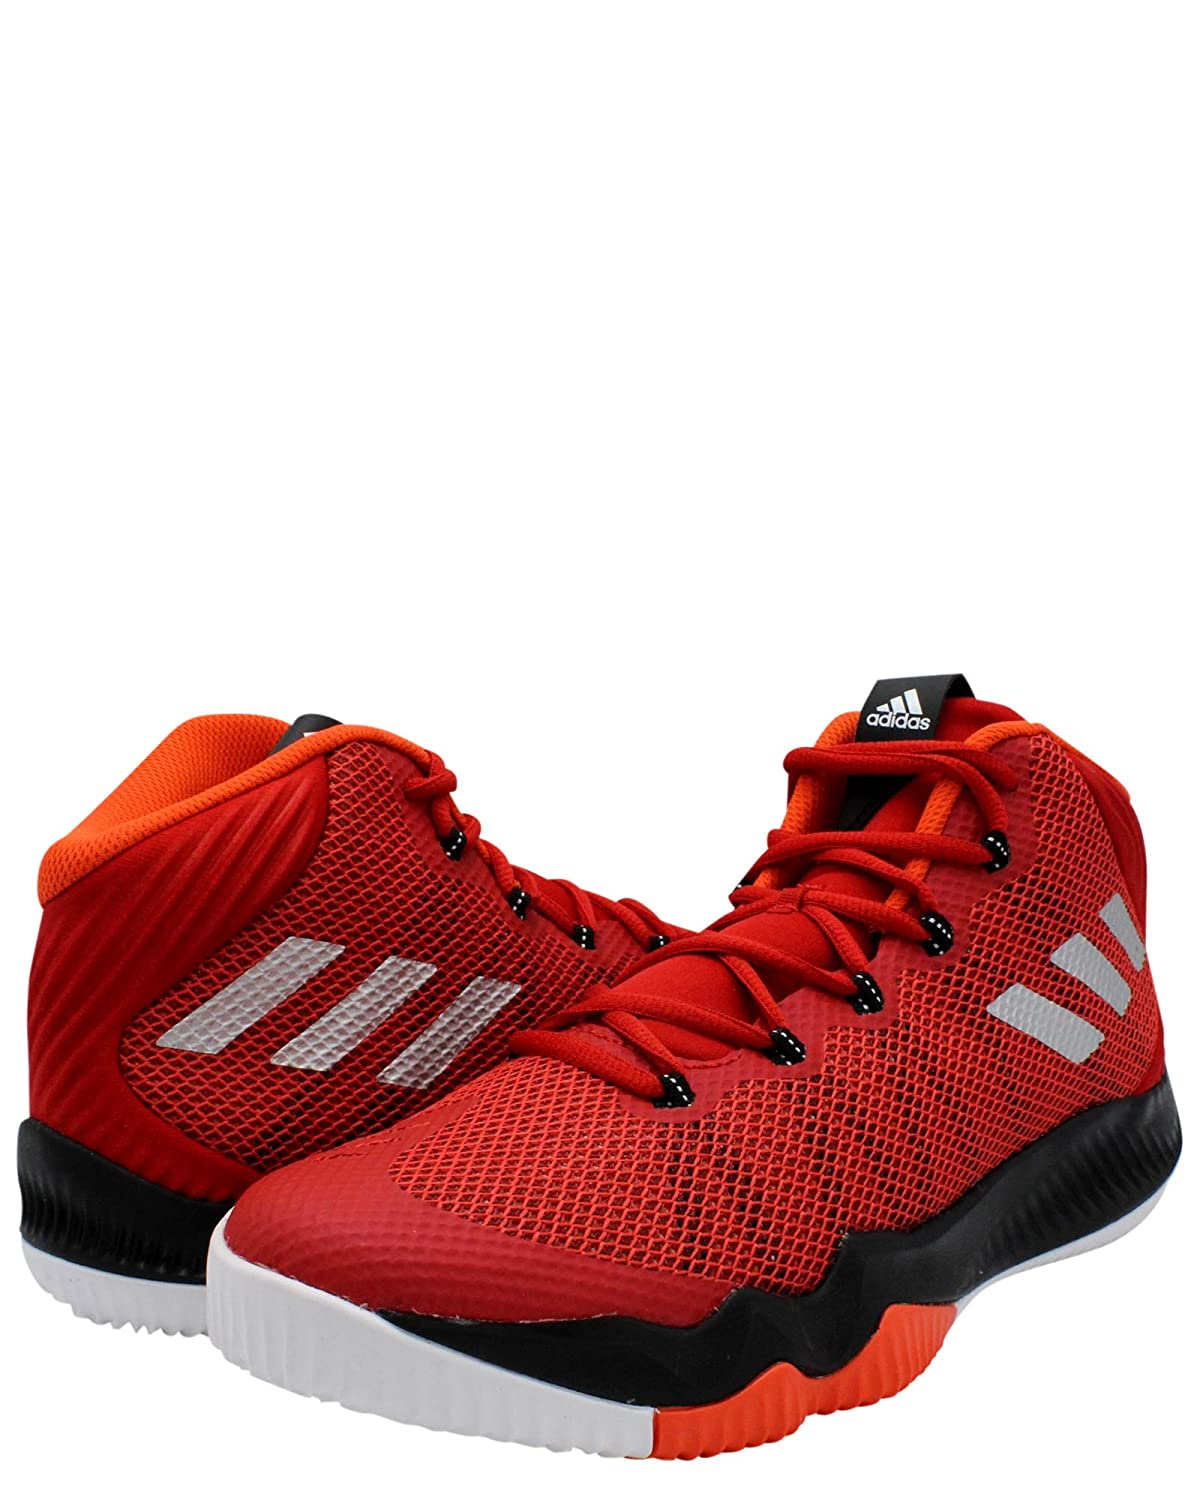 super popular 2acd8 e893f Amazon.com  adidas Crazy Hustle Mens Basketball Shoes  Baske